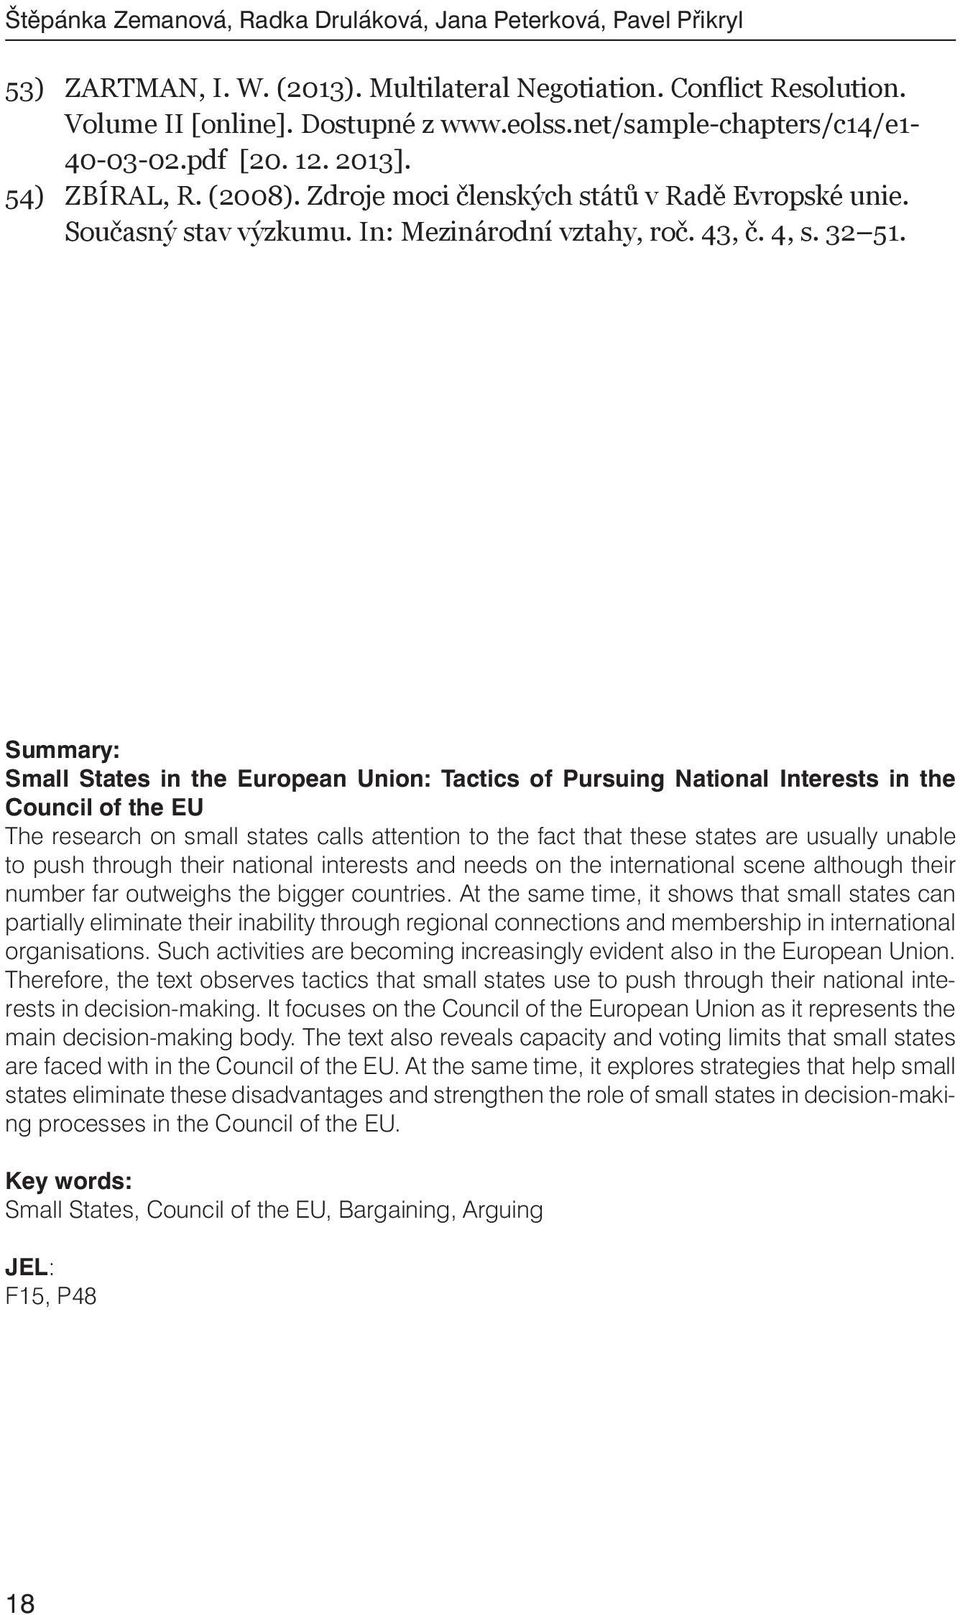 Summary: Small States in the European Union: Tactics of Pursuing National Interests in the Council of the EU The research on small states calls attention to the fact that these states are usually